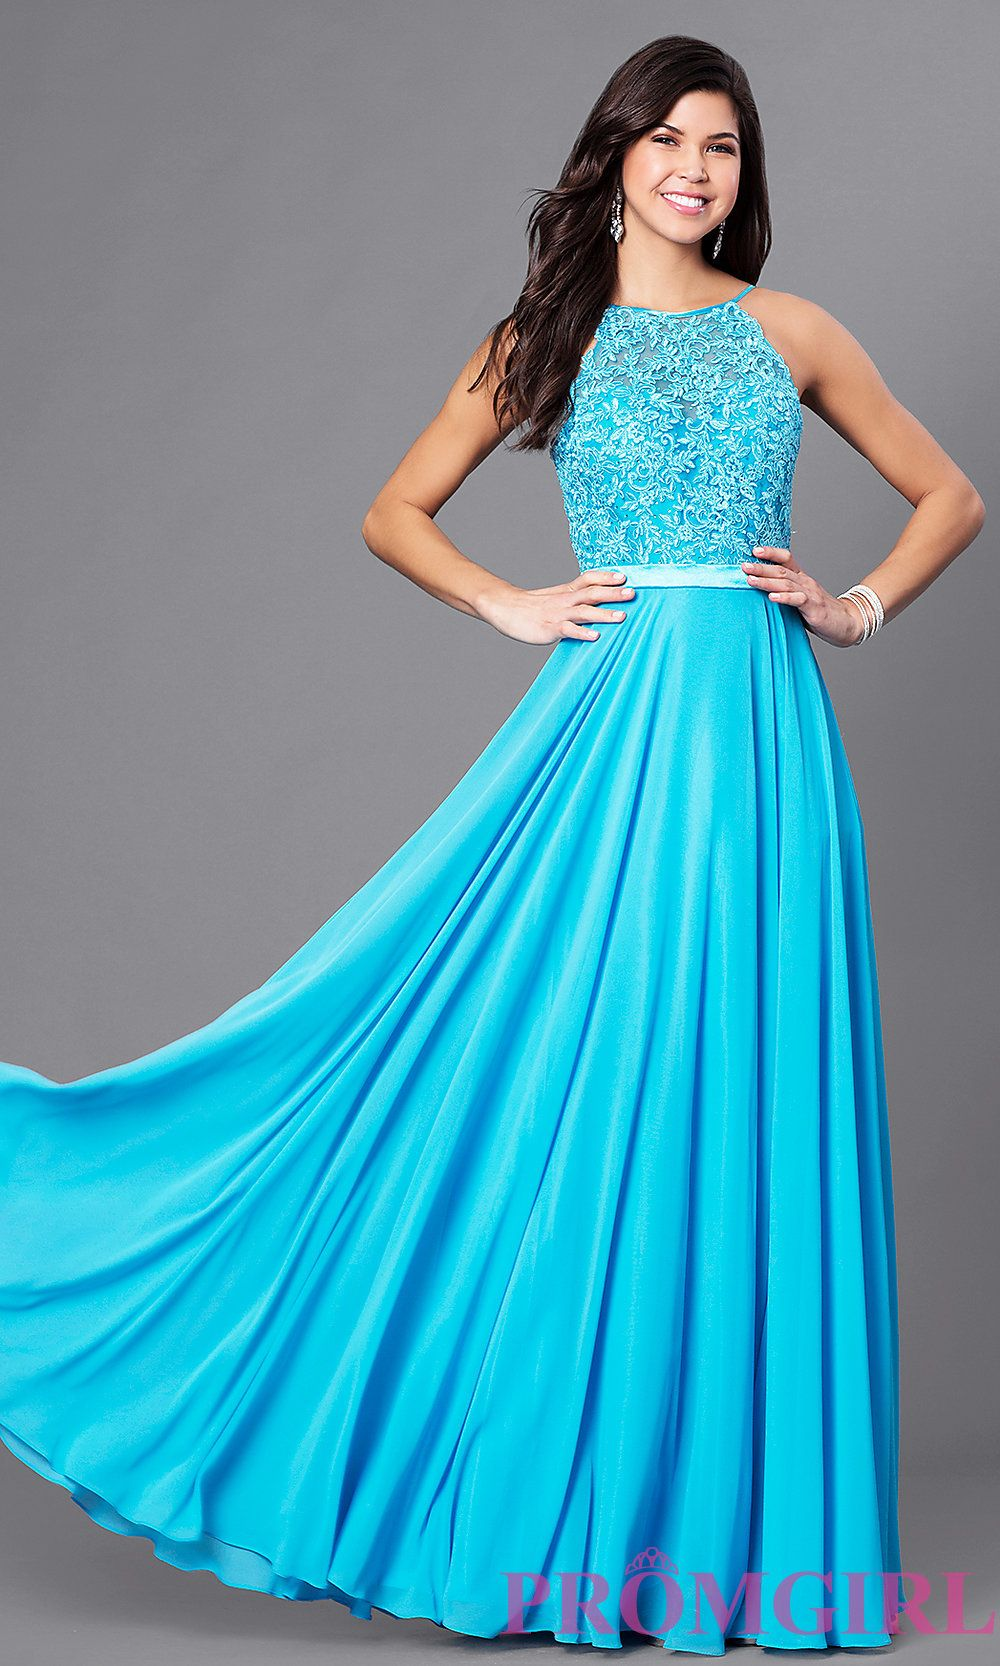 I like style cdglg from promgirl do you like prom